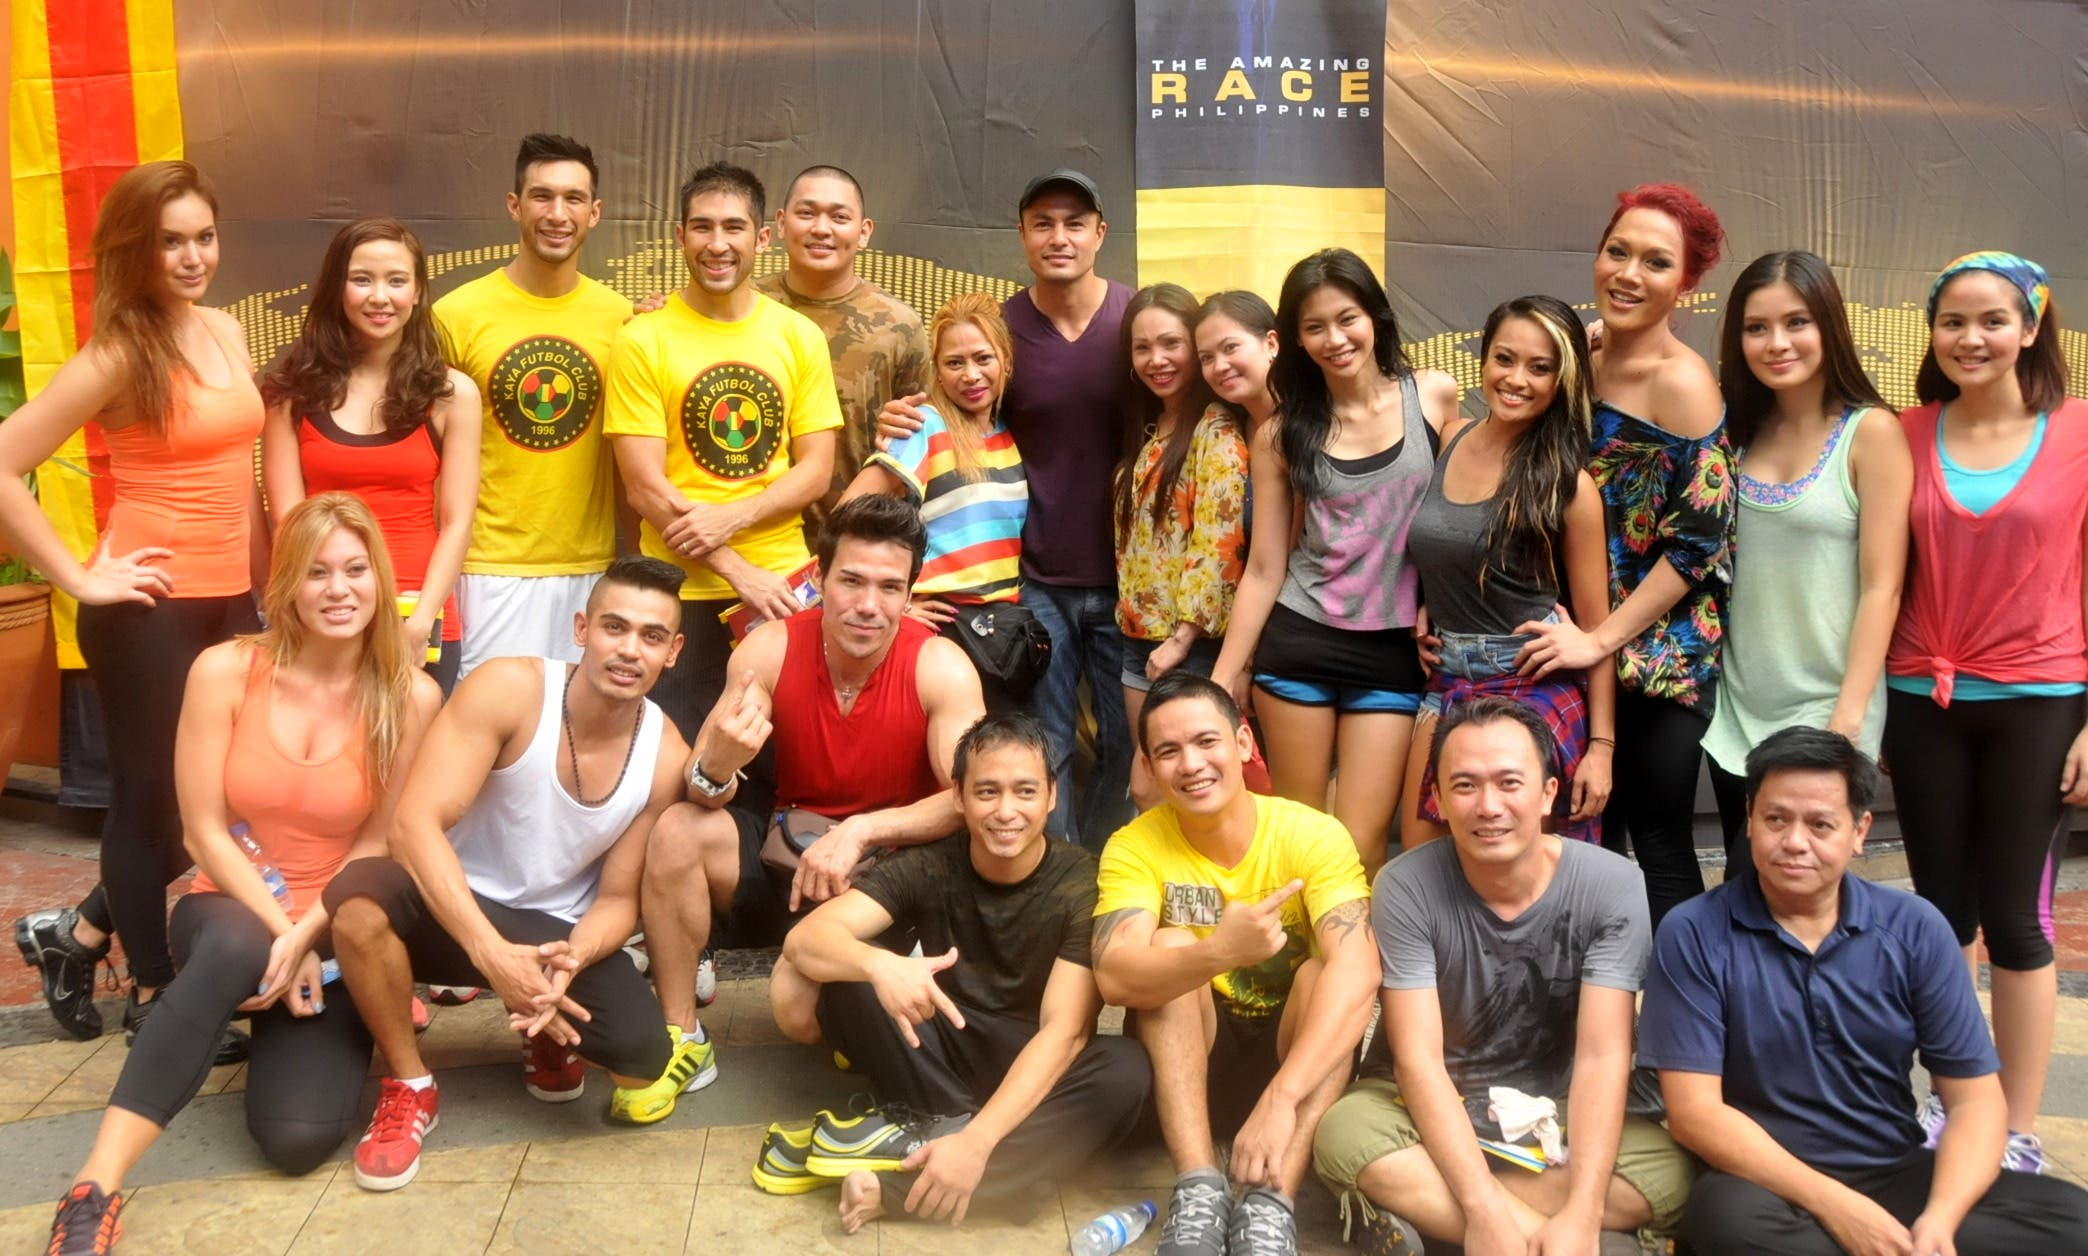 Host Derek Ramsay (center) with the 11 teams racing for the P2 million grand prize of The Amazing Race Philippines